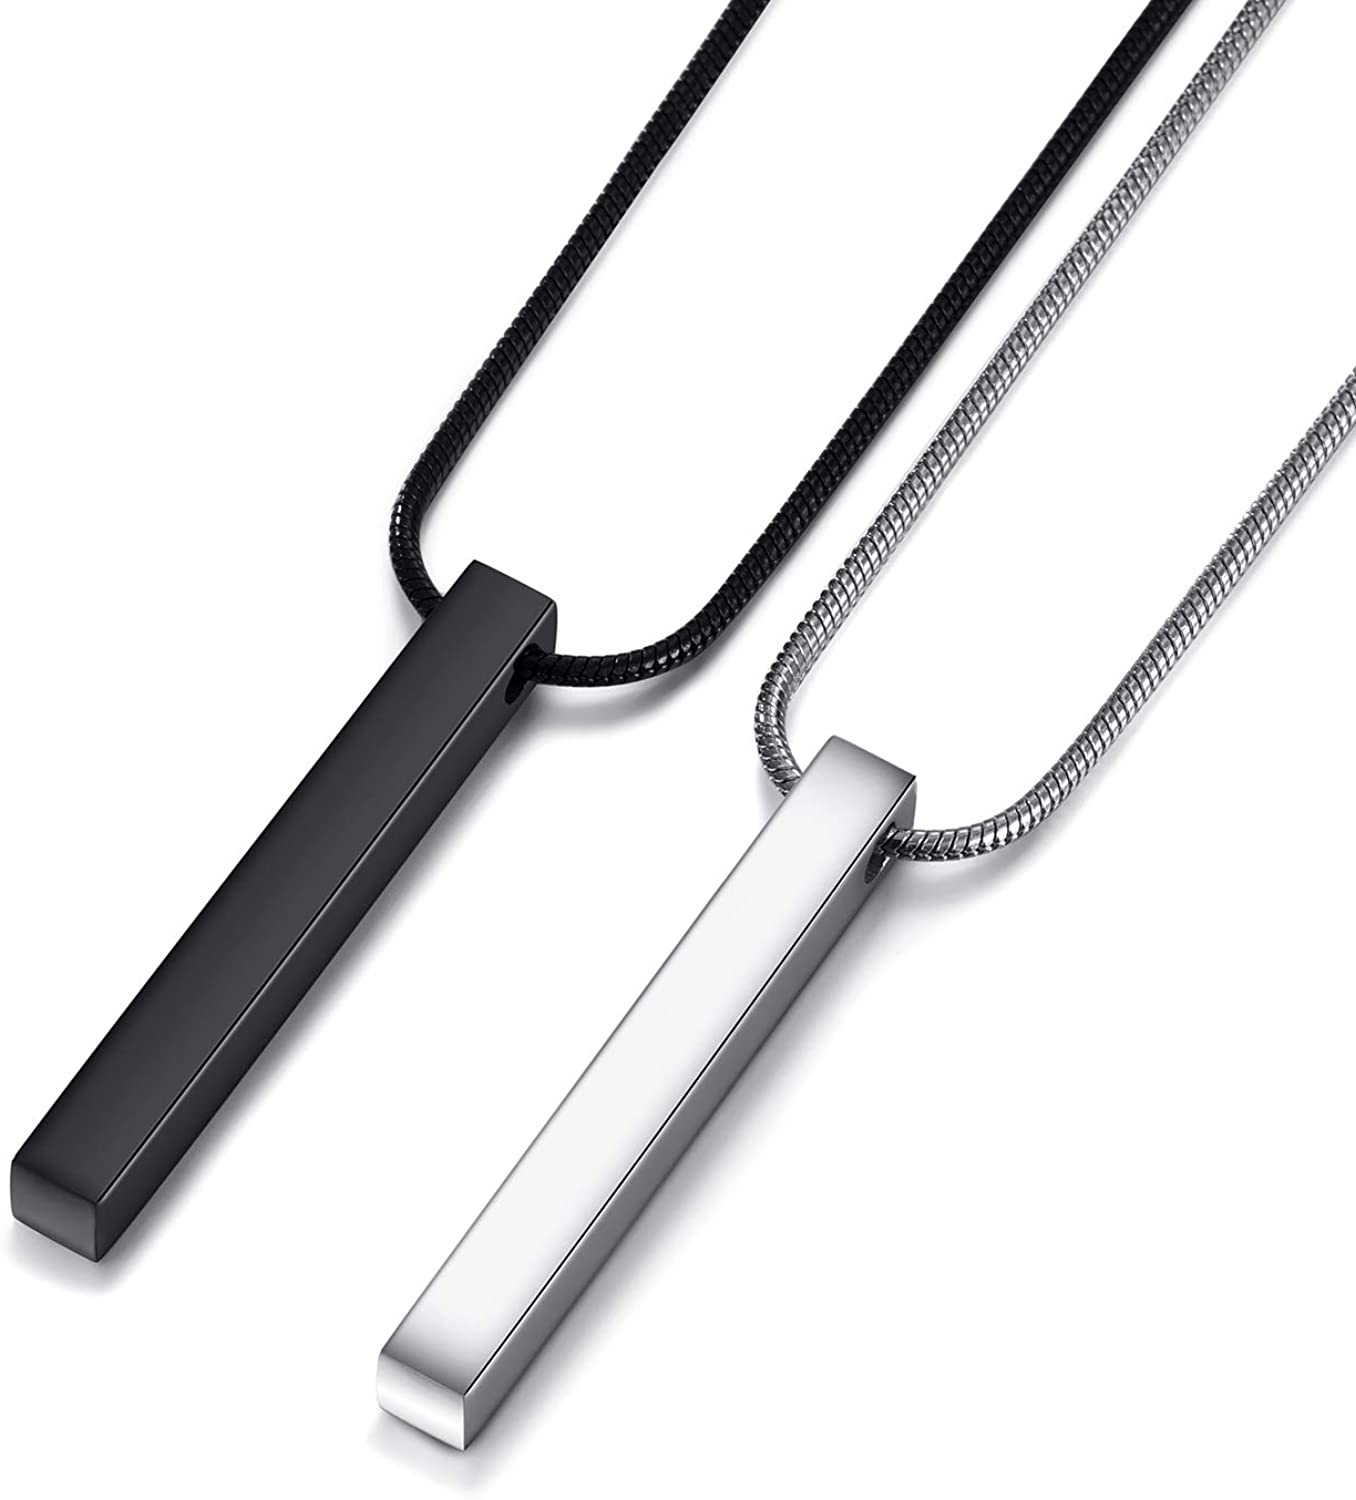 MOO&LEE Stainless Steel Bar Pendant Necklace for Men and Women|,| Couples Necklaces 22 Inches Snake Chain|,| Unisex